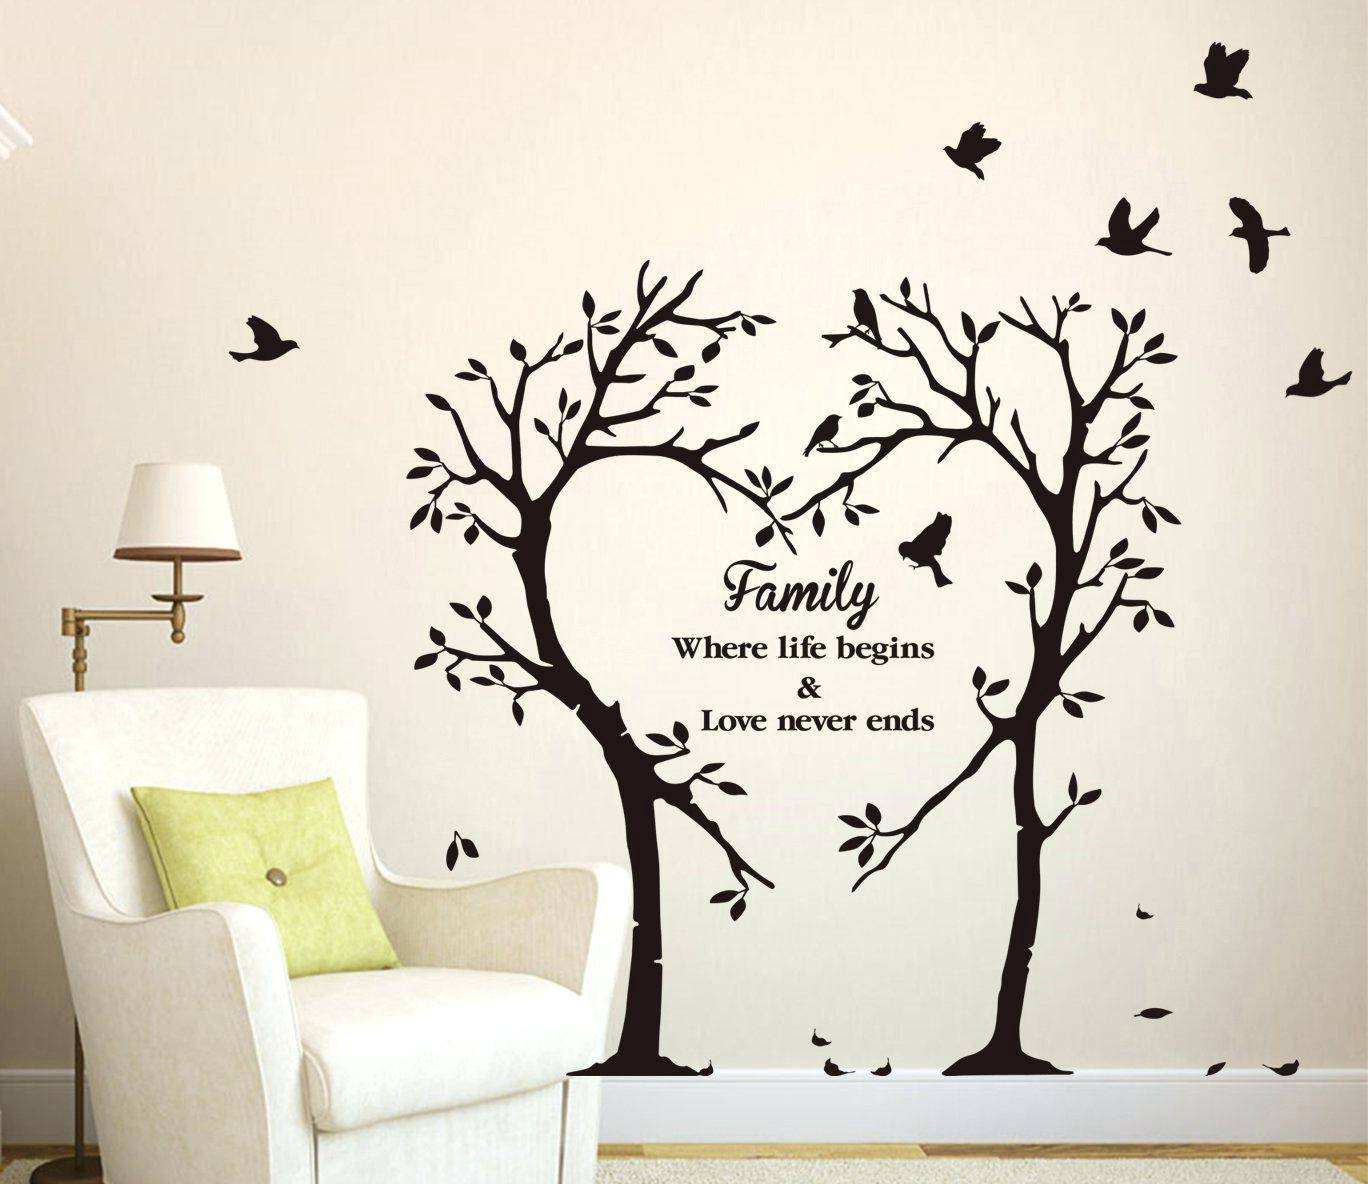 Vinyl Decal Wall Art – Gutesleben Intended For 2017 Vinyl Wall Art Tree (View 11 of 20)